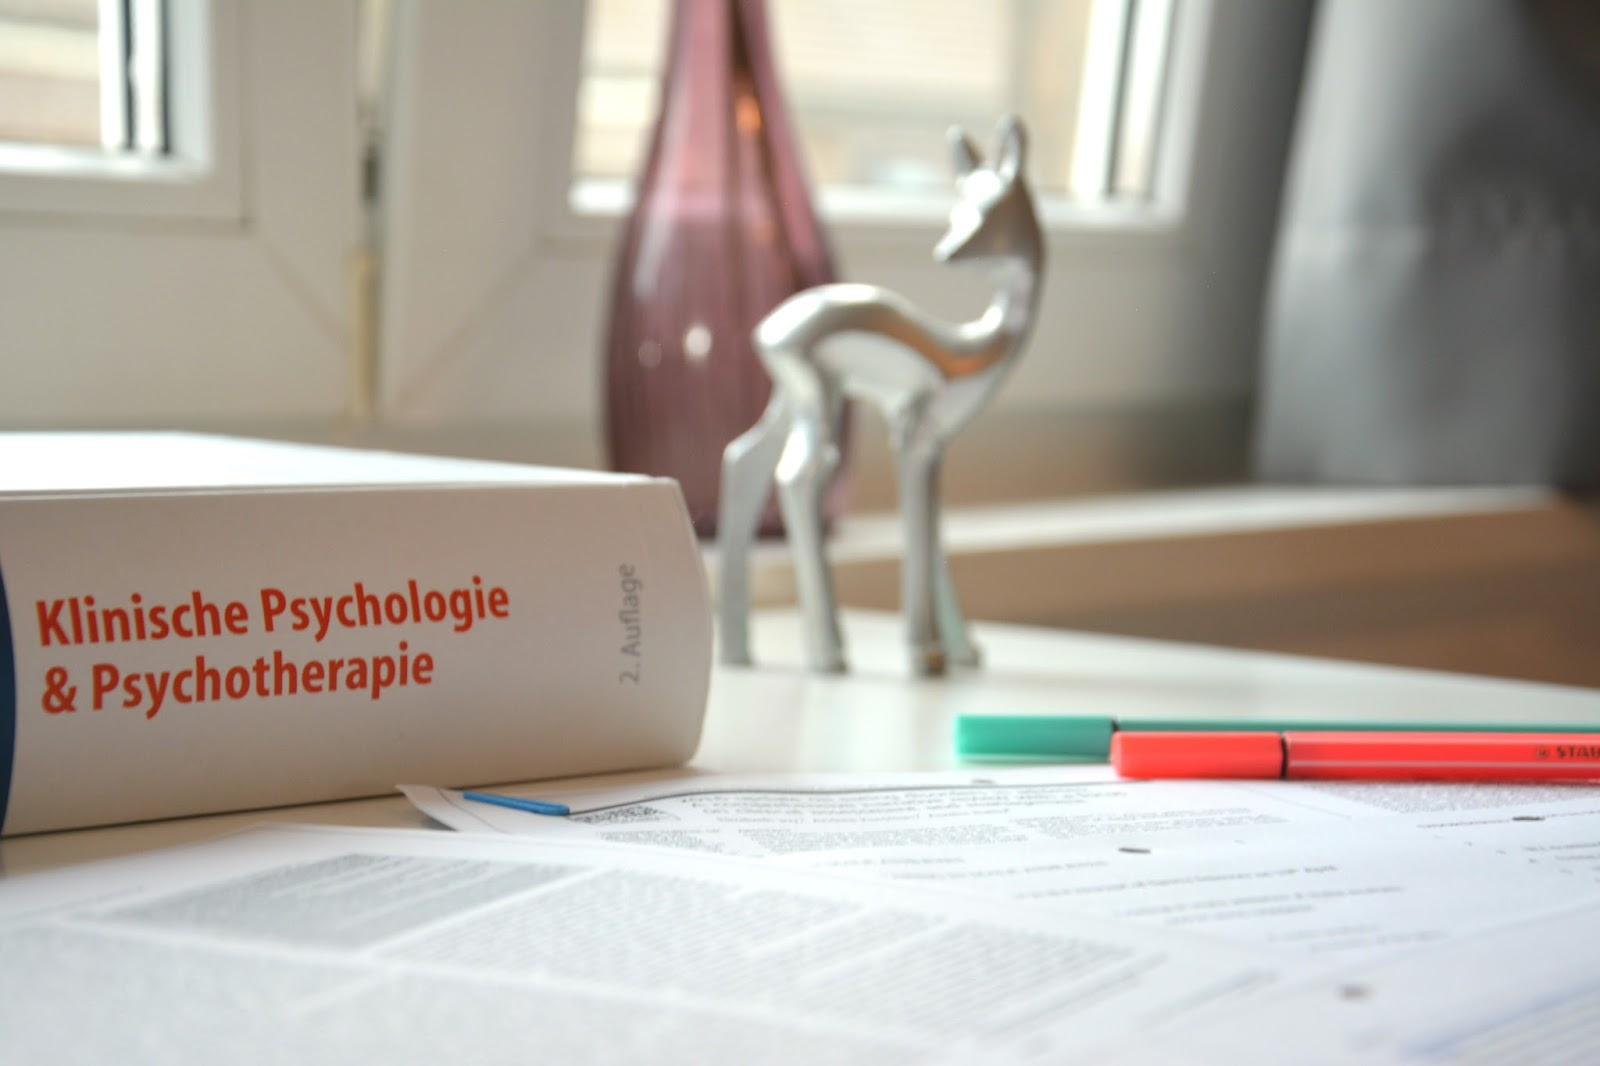 Highlighters on top of Research Papers; Klinische Psychologie; book: decorations; deer